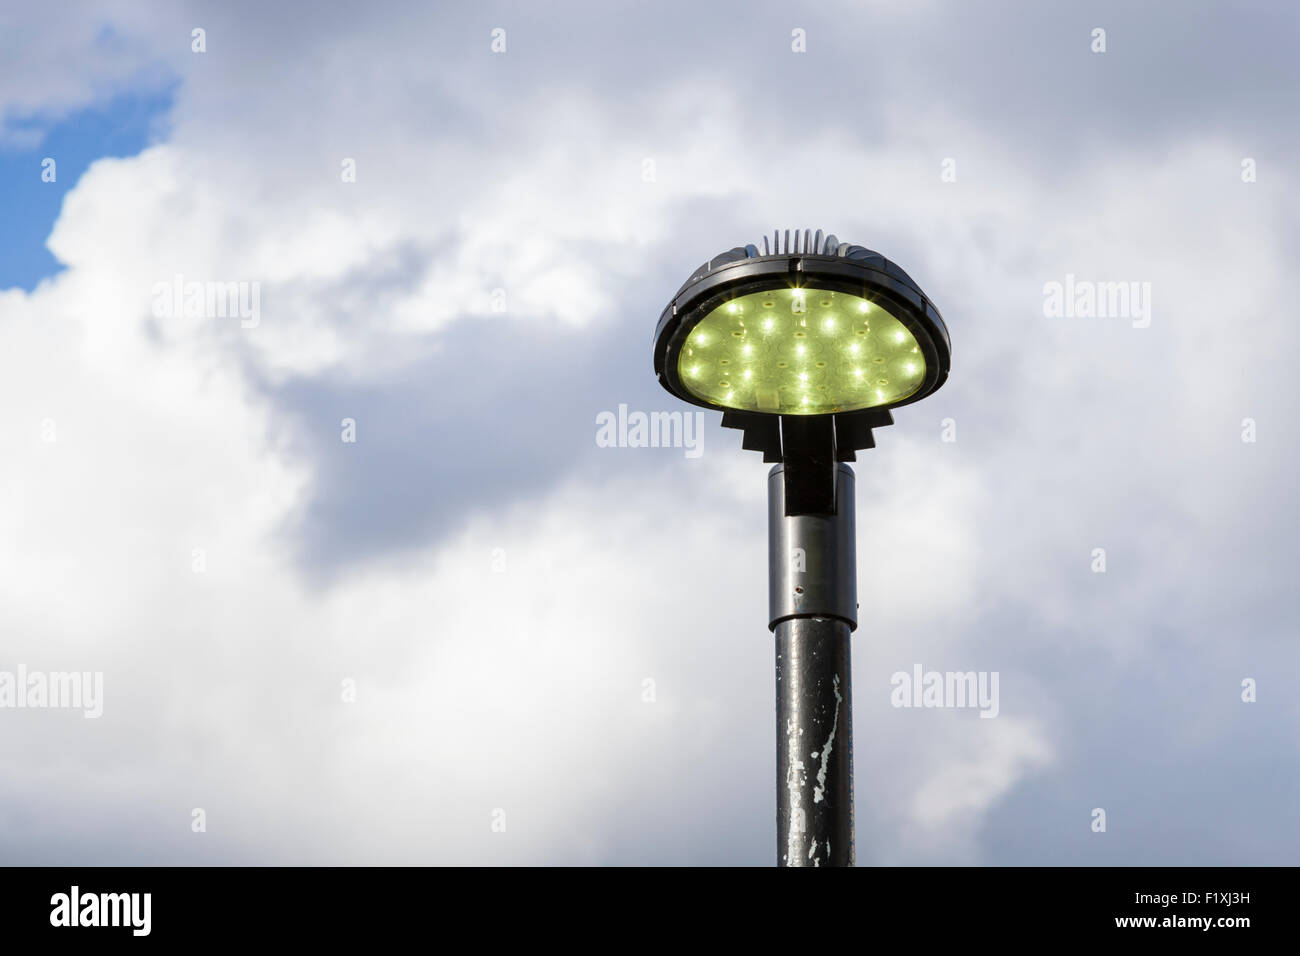 LED streetlight, England, UK - Stock Image